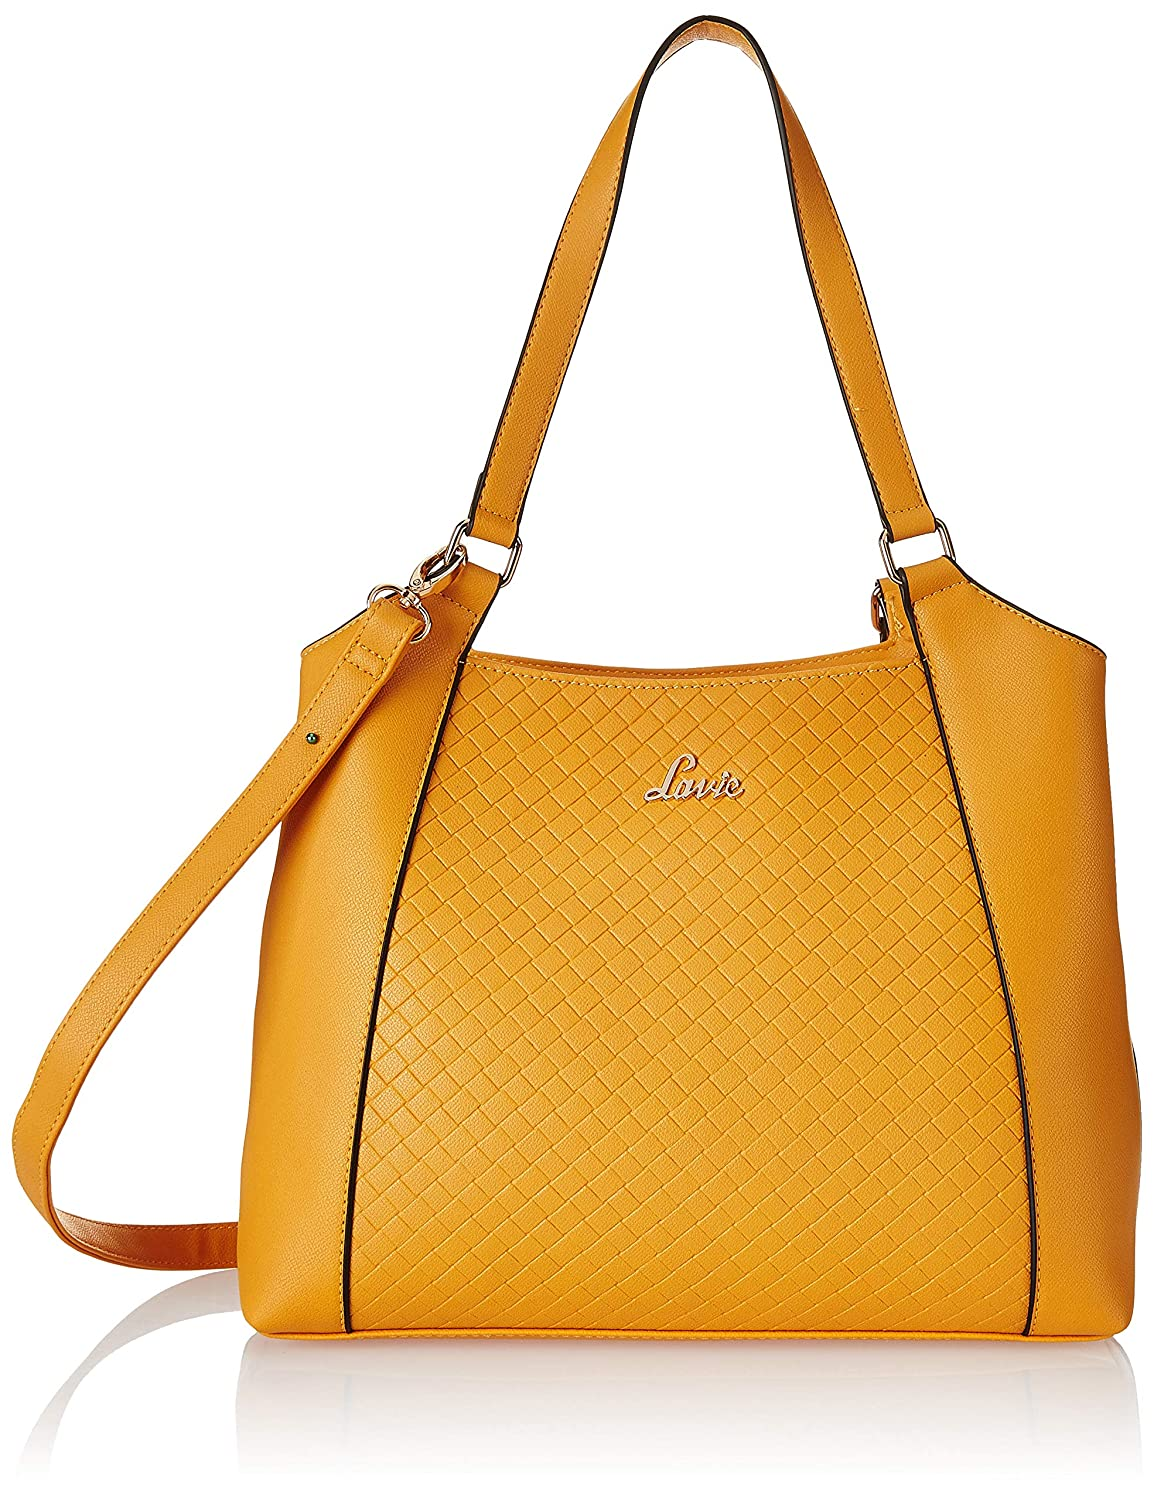 Lavie Handbags – Minimum 50% Off